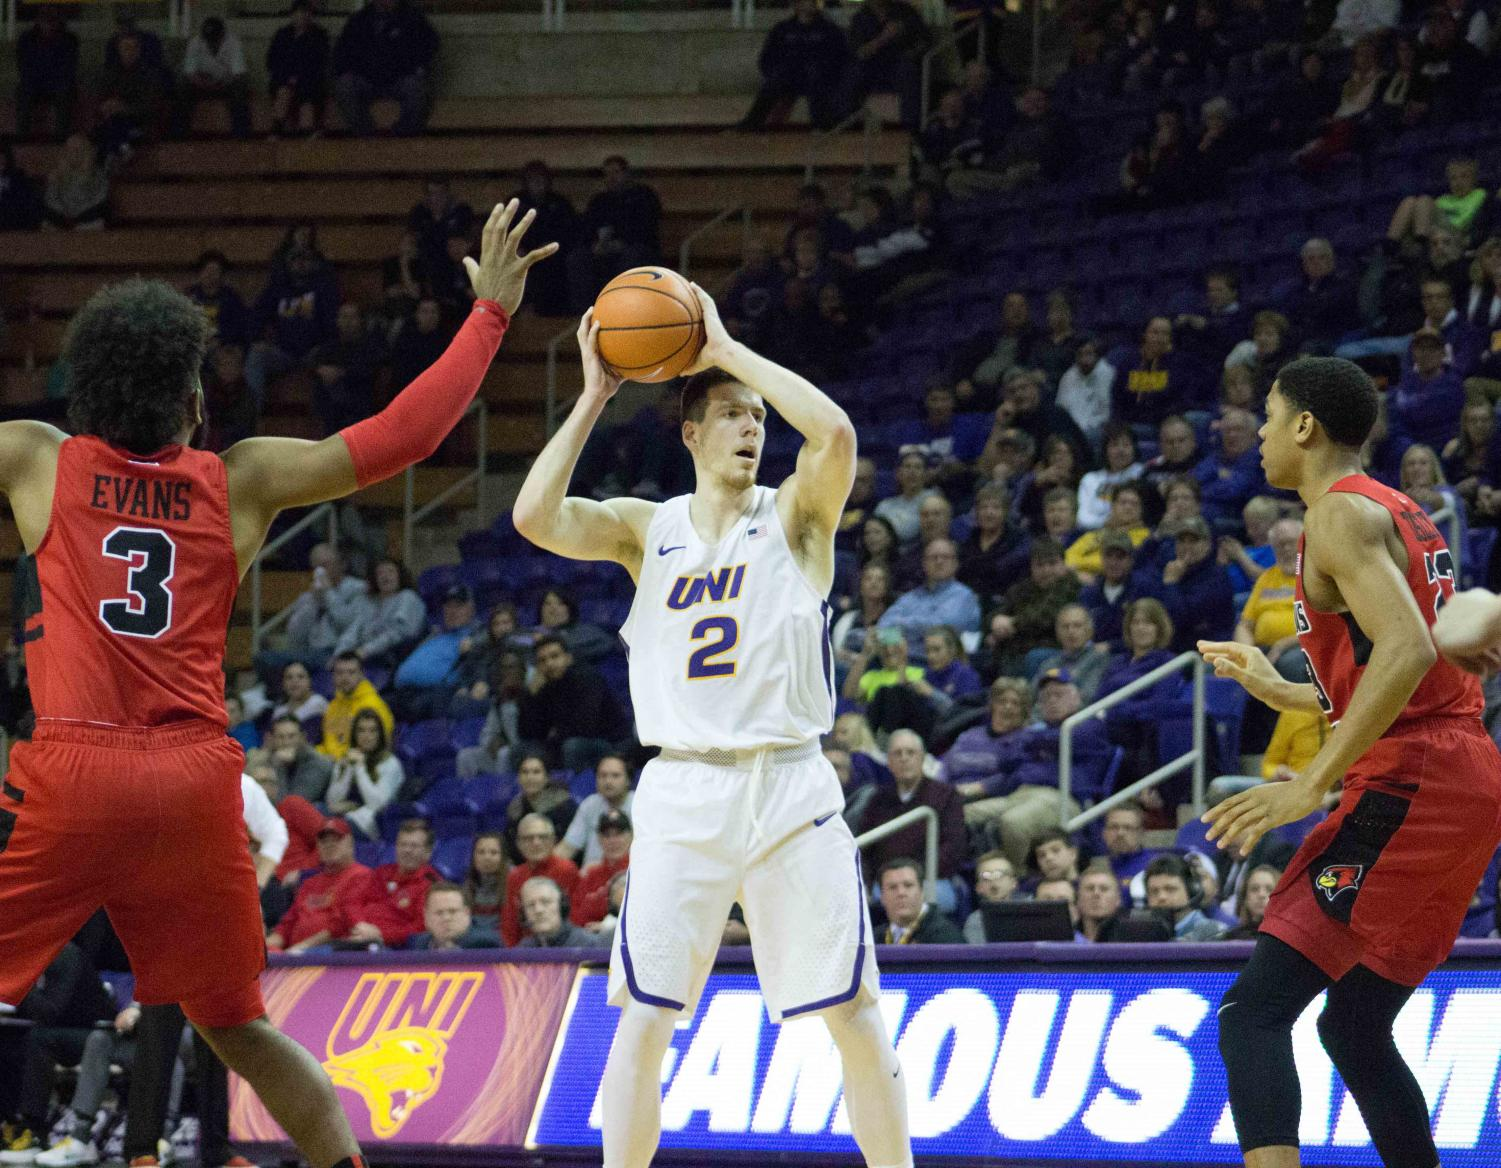 UNI won one game before losing their second in the Missouri Valley Conference Tournament this past weekend. Klint Carlson (2) scored nine points in the first game.